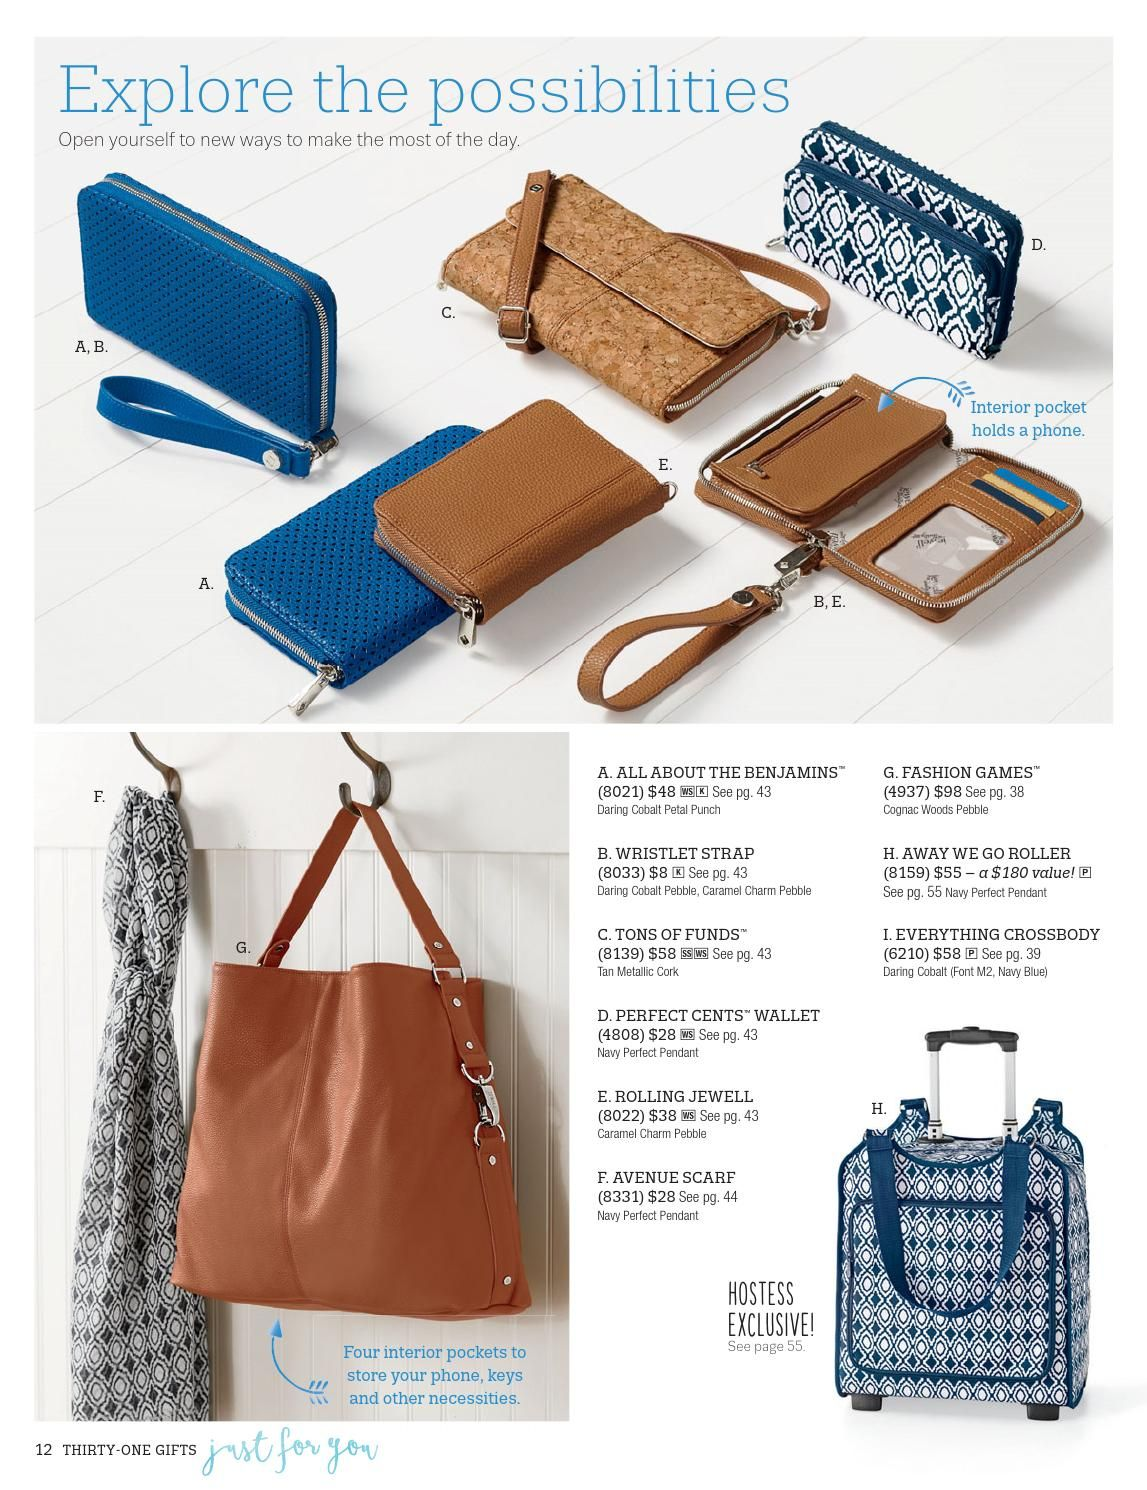 Thirty One Catalog 2016 - Spring   Summer by Kahne Kuanoni, Sr. Executive Director   Thirty One - issuu